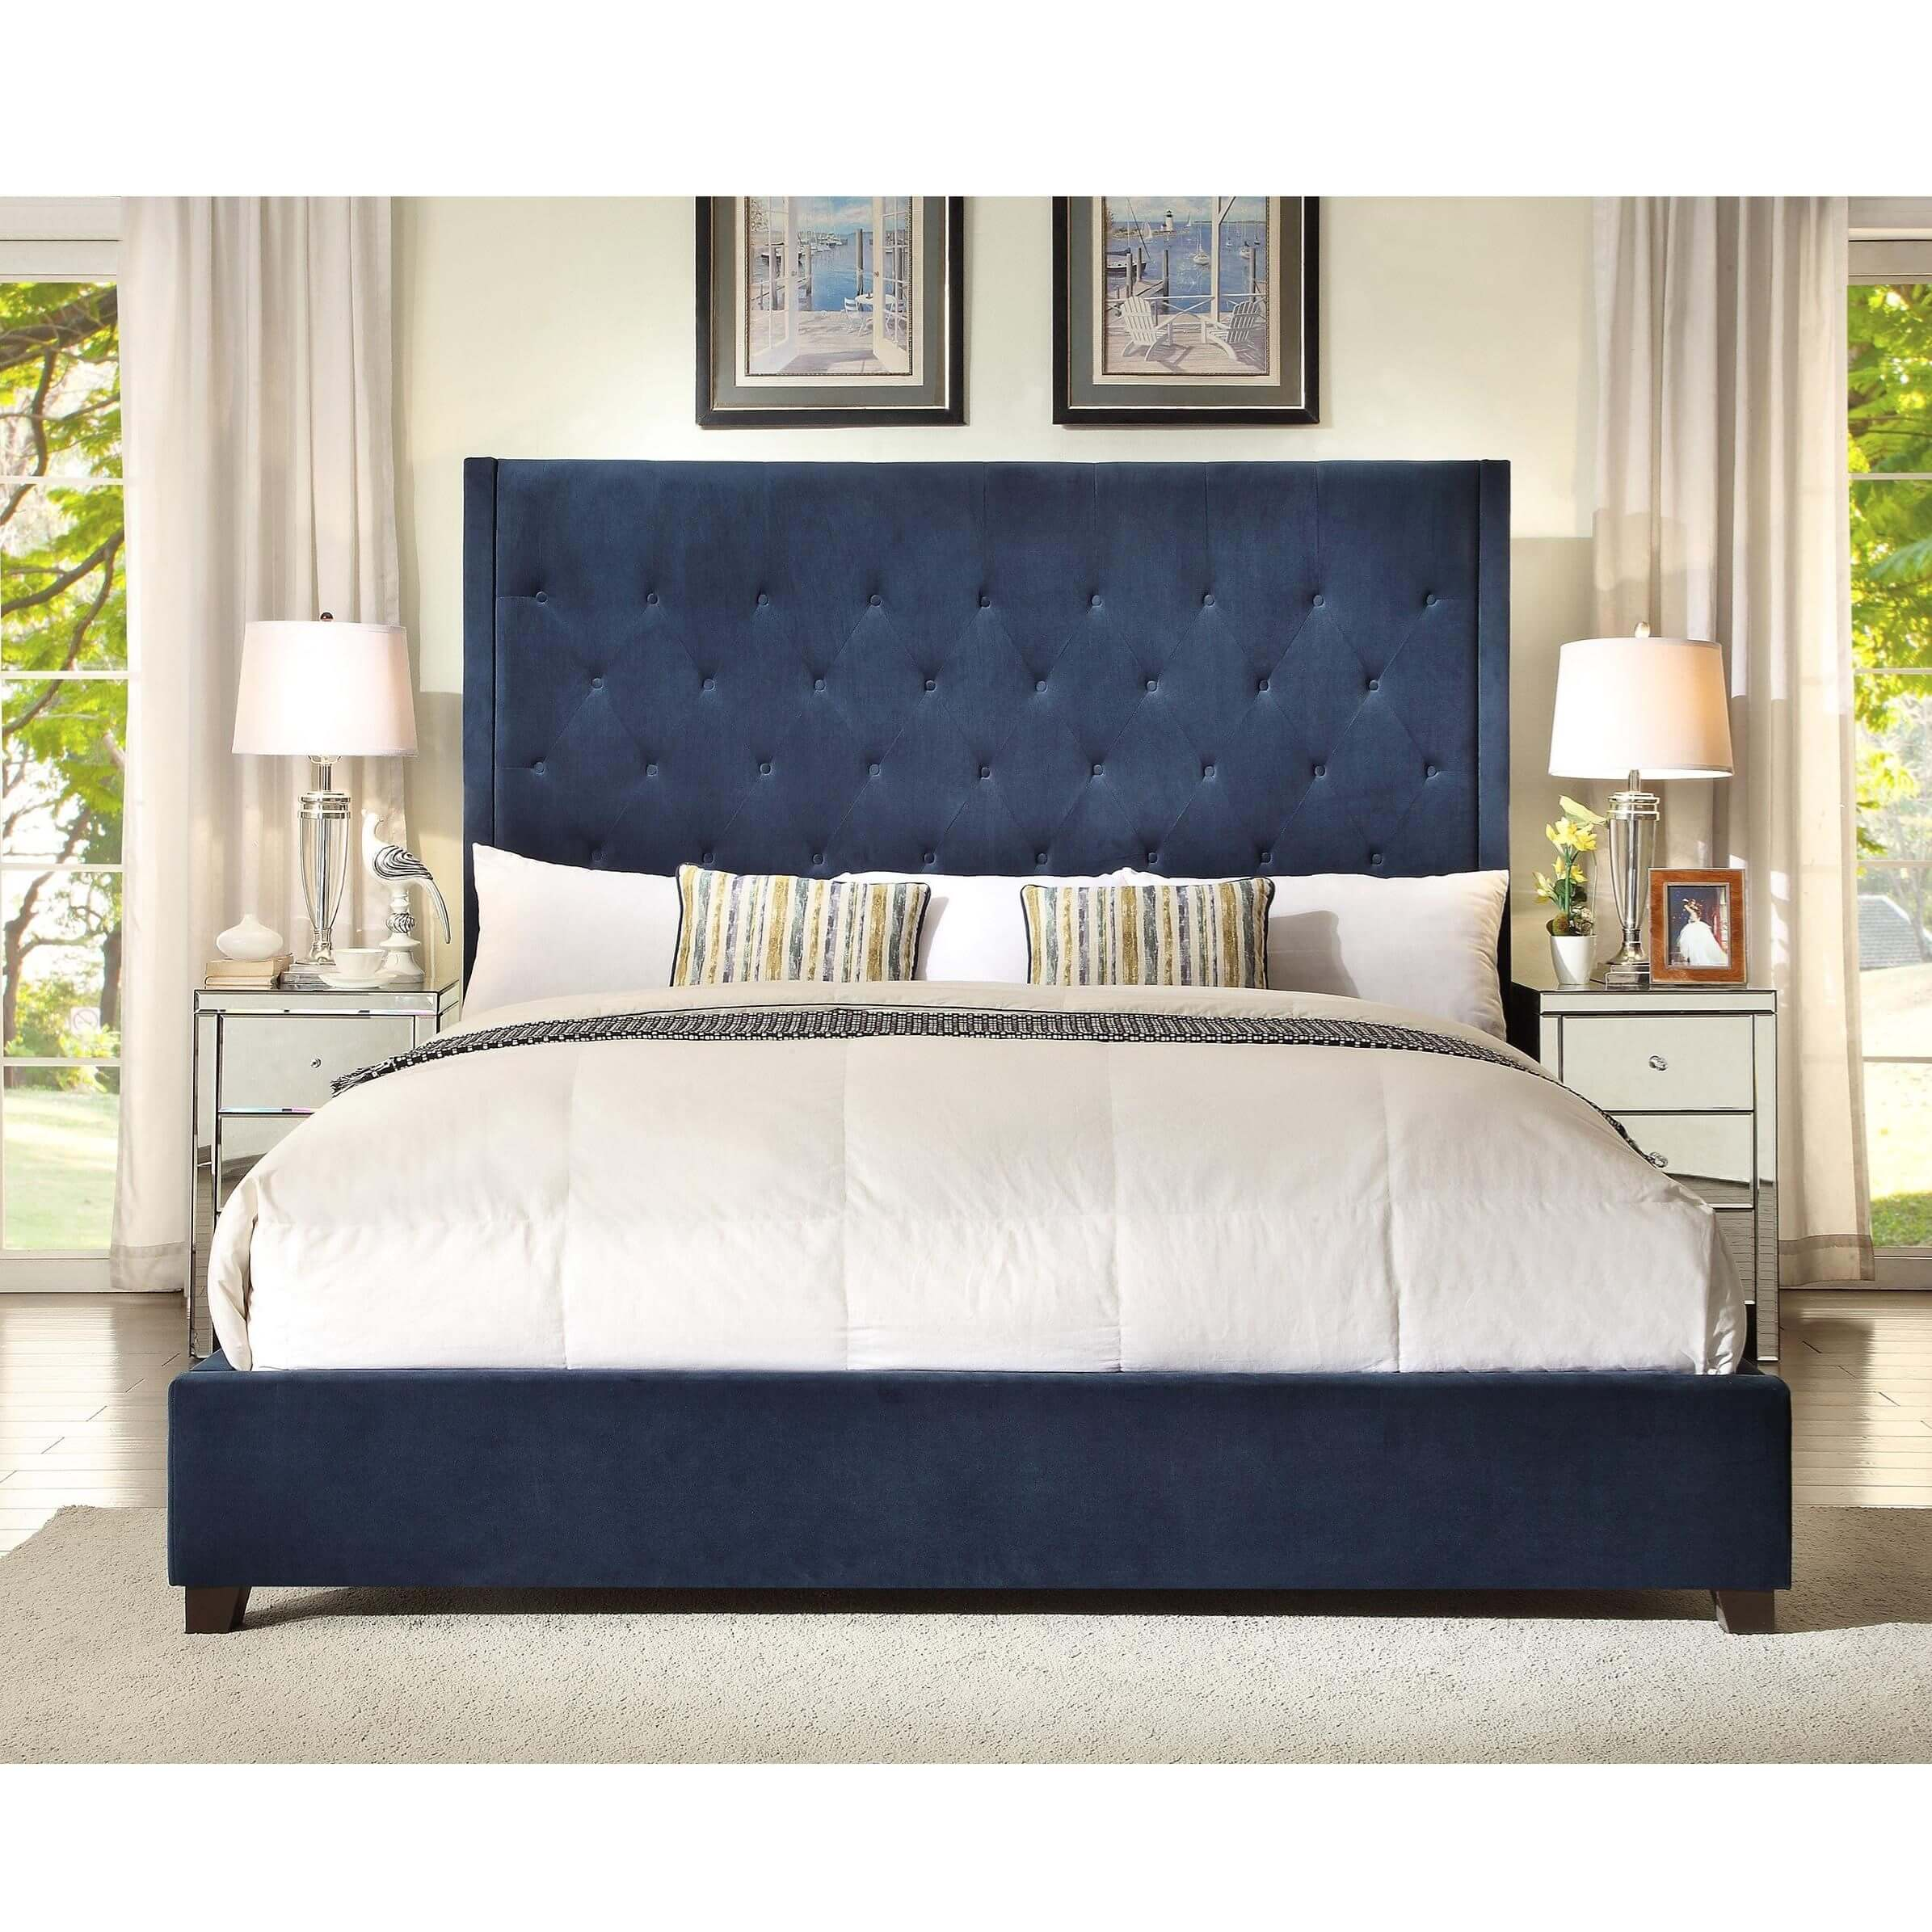 tufted bedroom furniture button reese navy tufted bed bedroom furniture